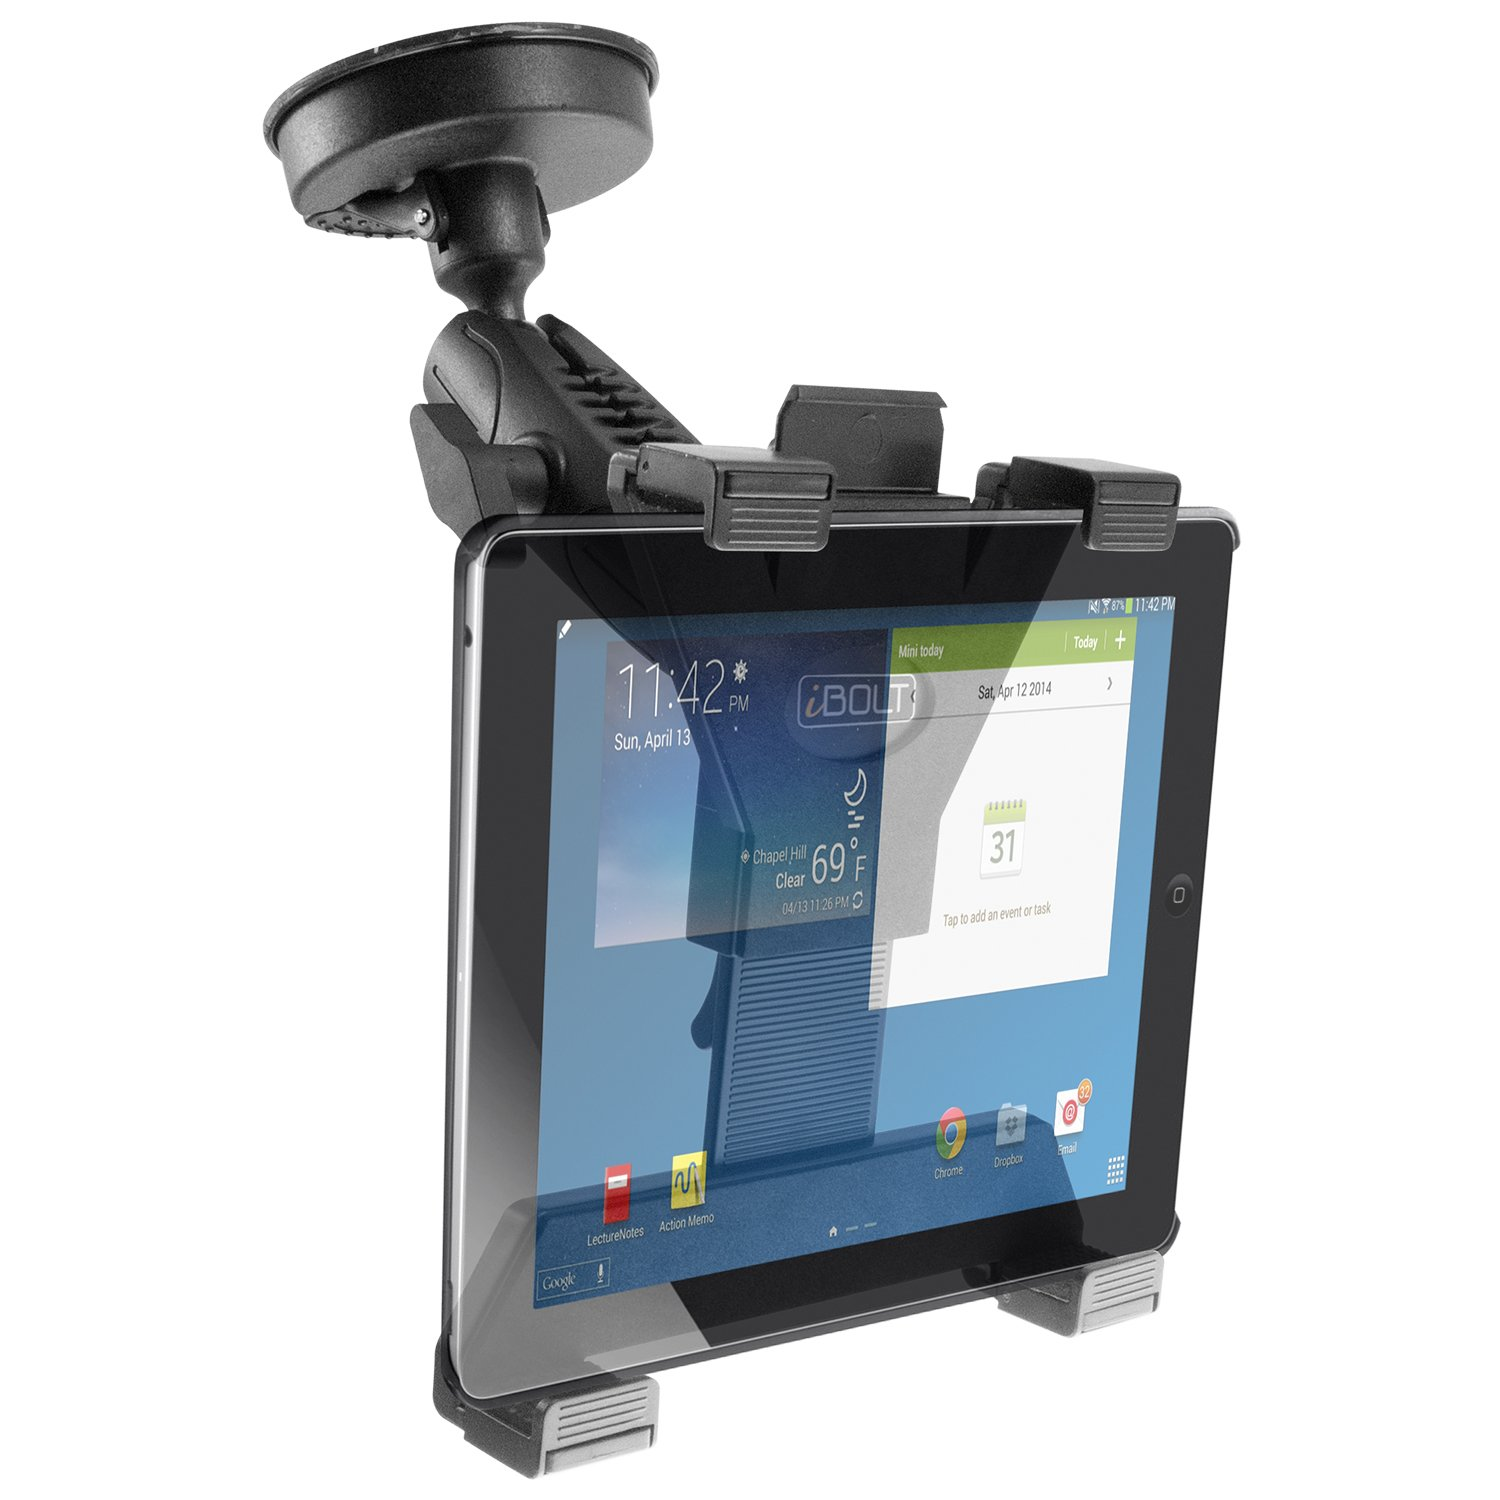 Great for Work Personal and Business Vehicles Heavy Duty Vehicle Console Mount for All 7-10 Tablets iPad, Nexus, Samsung Tab iBOLT TabDock Bizmount Wedge